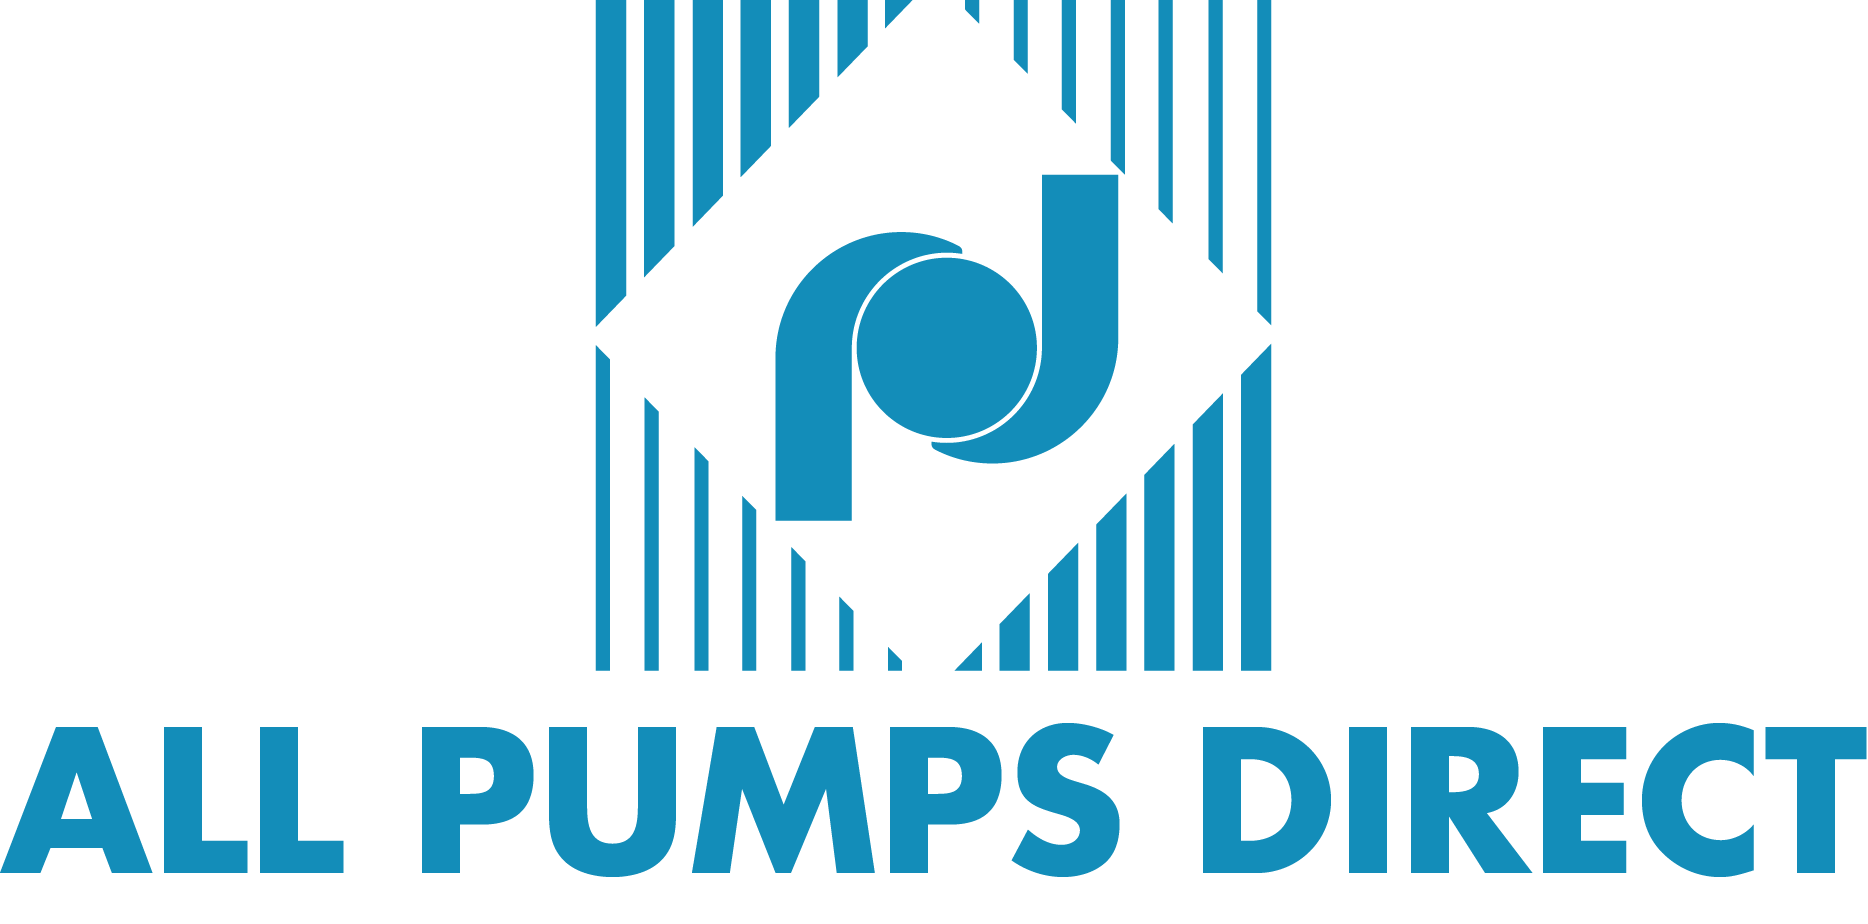 All Pumps Direct